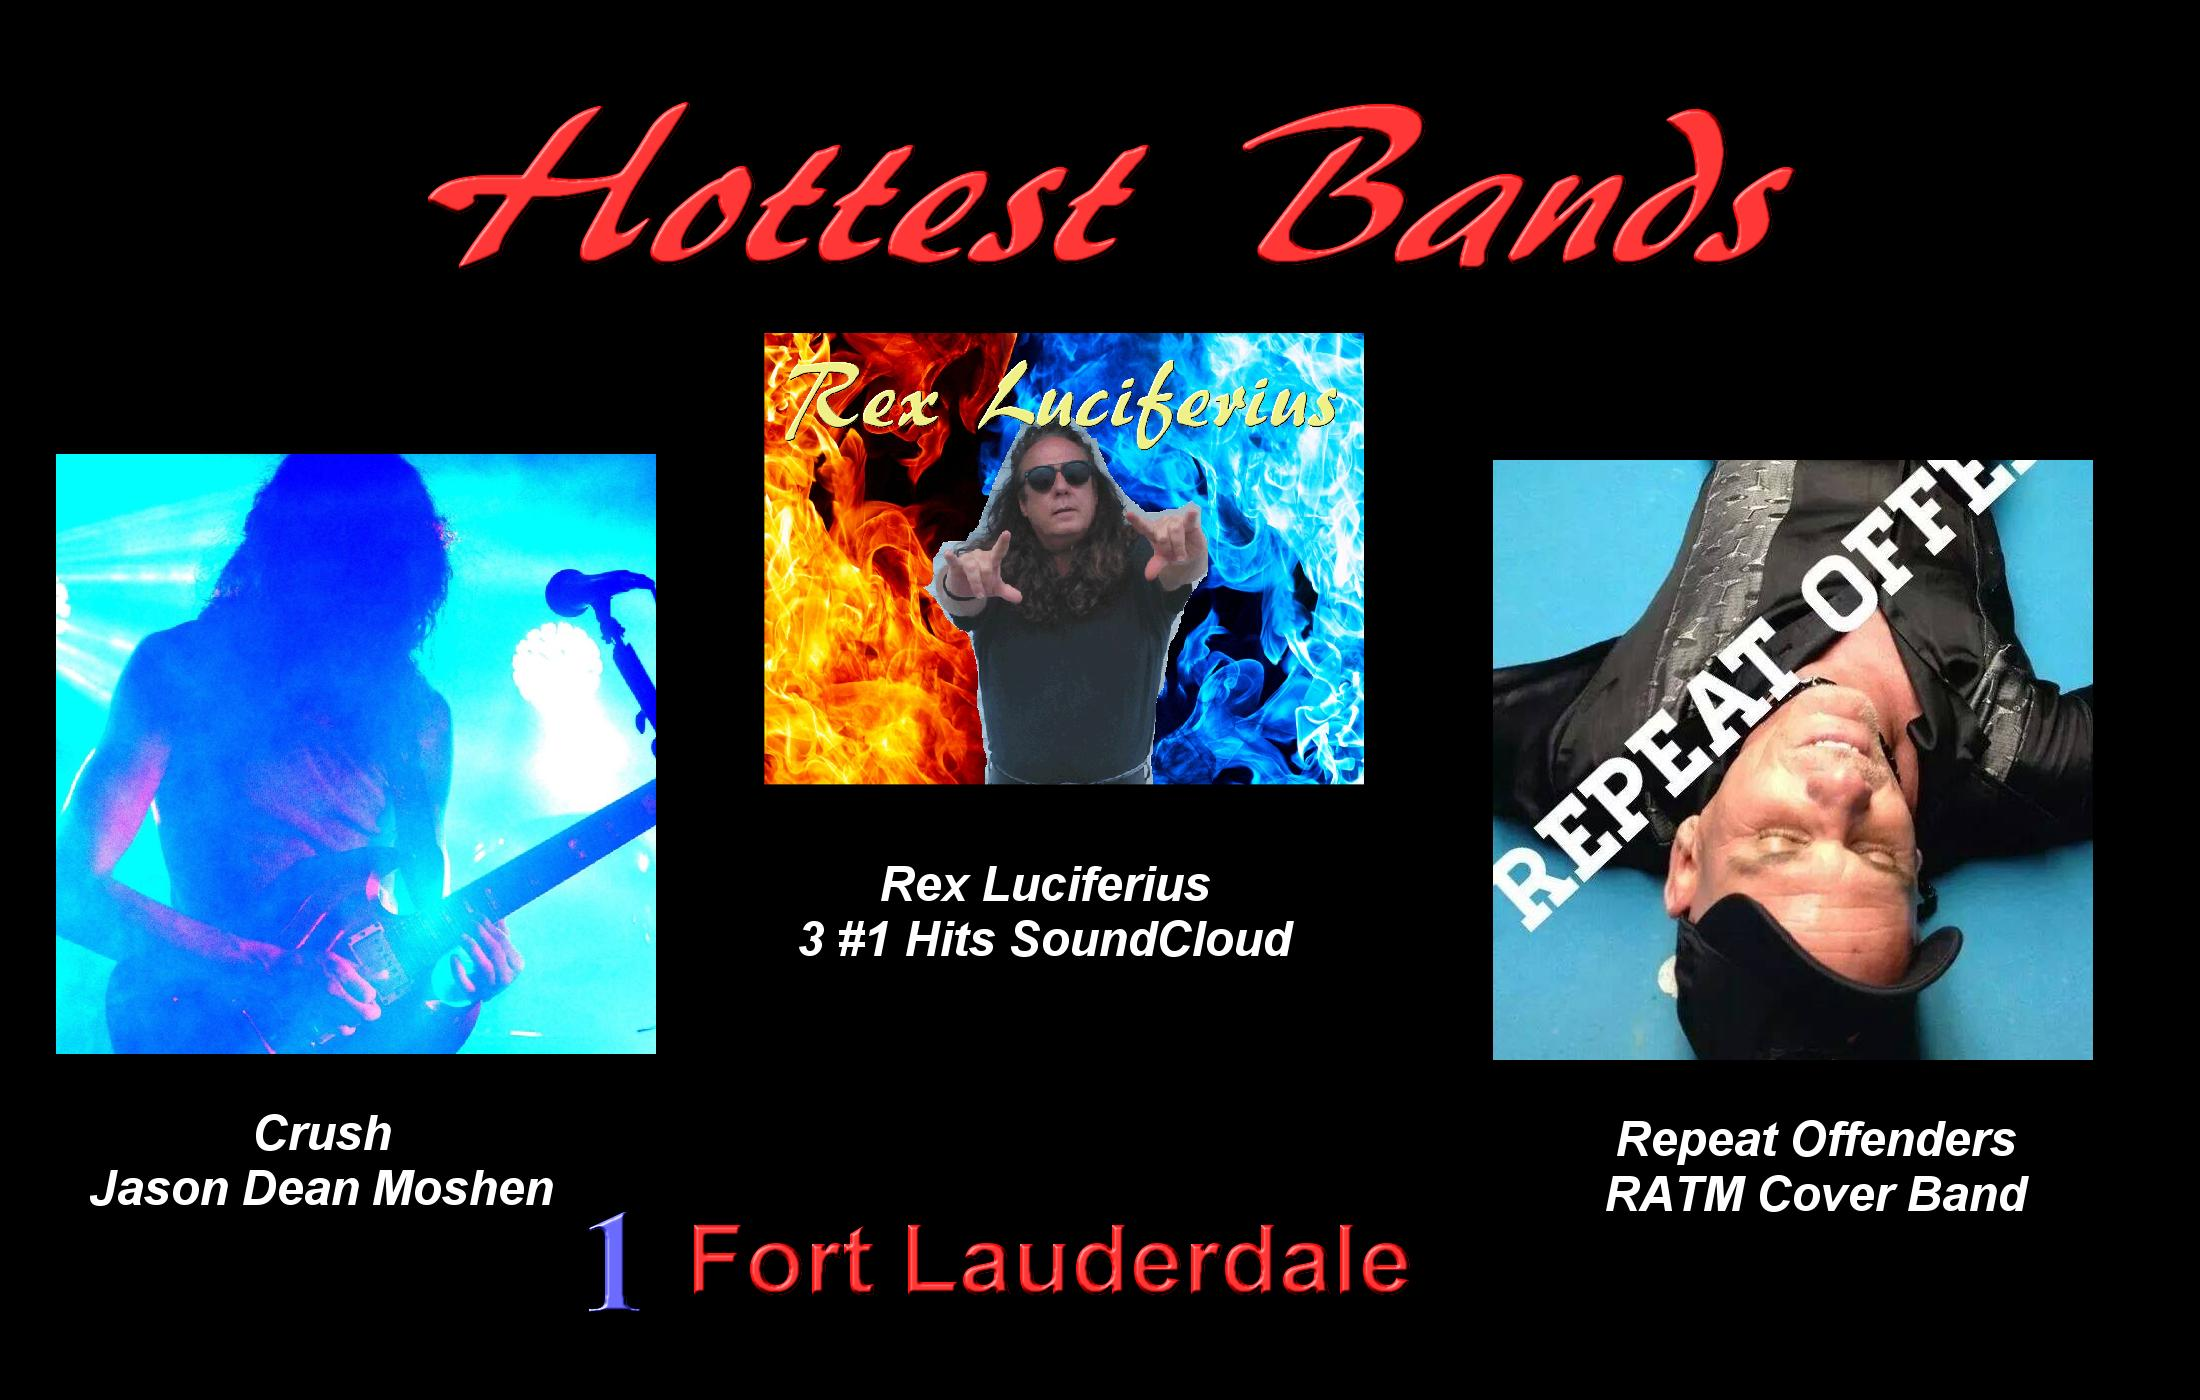 Hottest Bands Fort Lauderdale